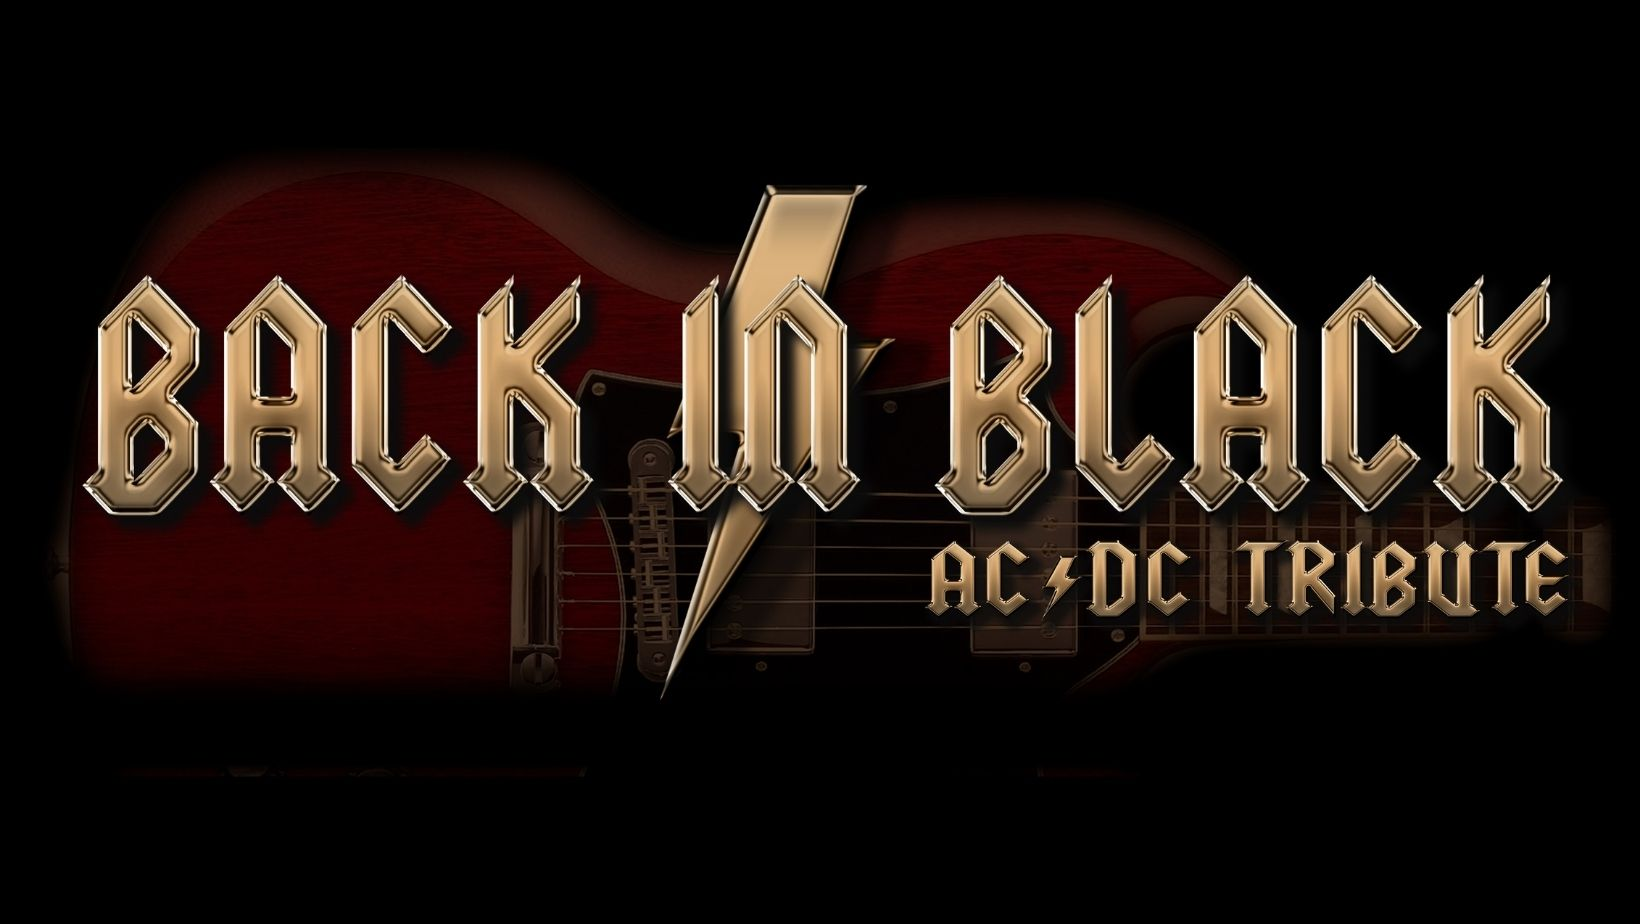 Promo image of AC/DC Tribute: Back in Black